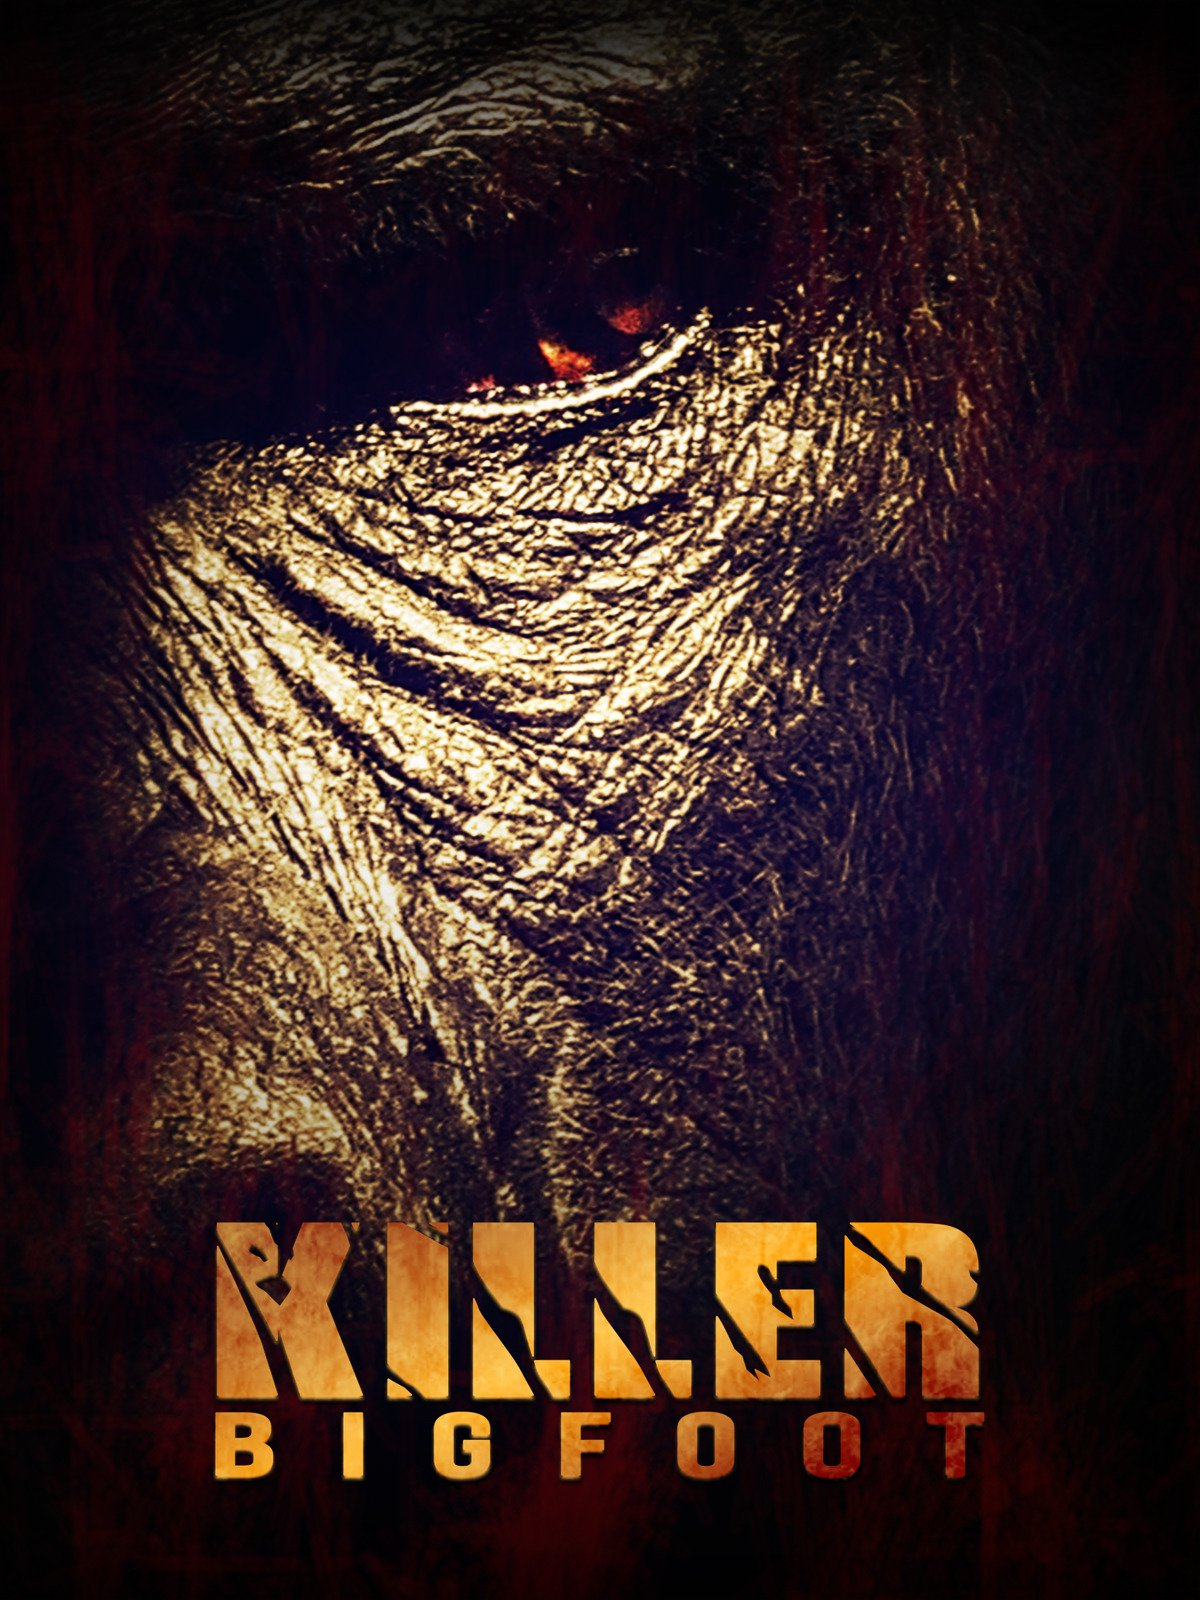 Killer Bigfoot